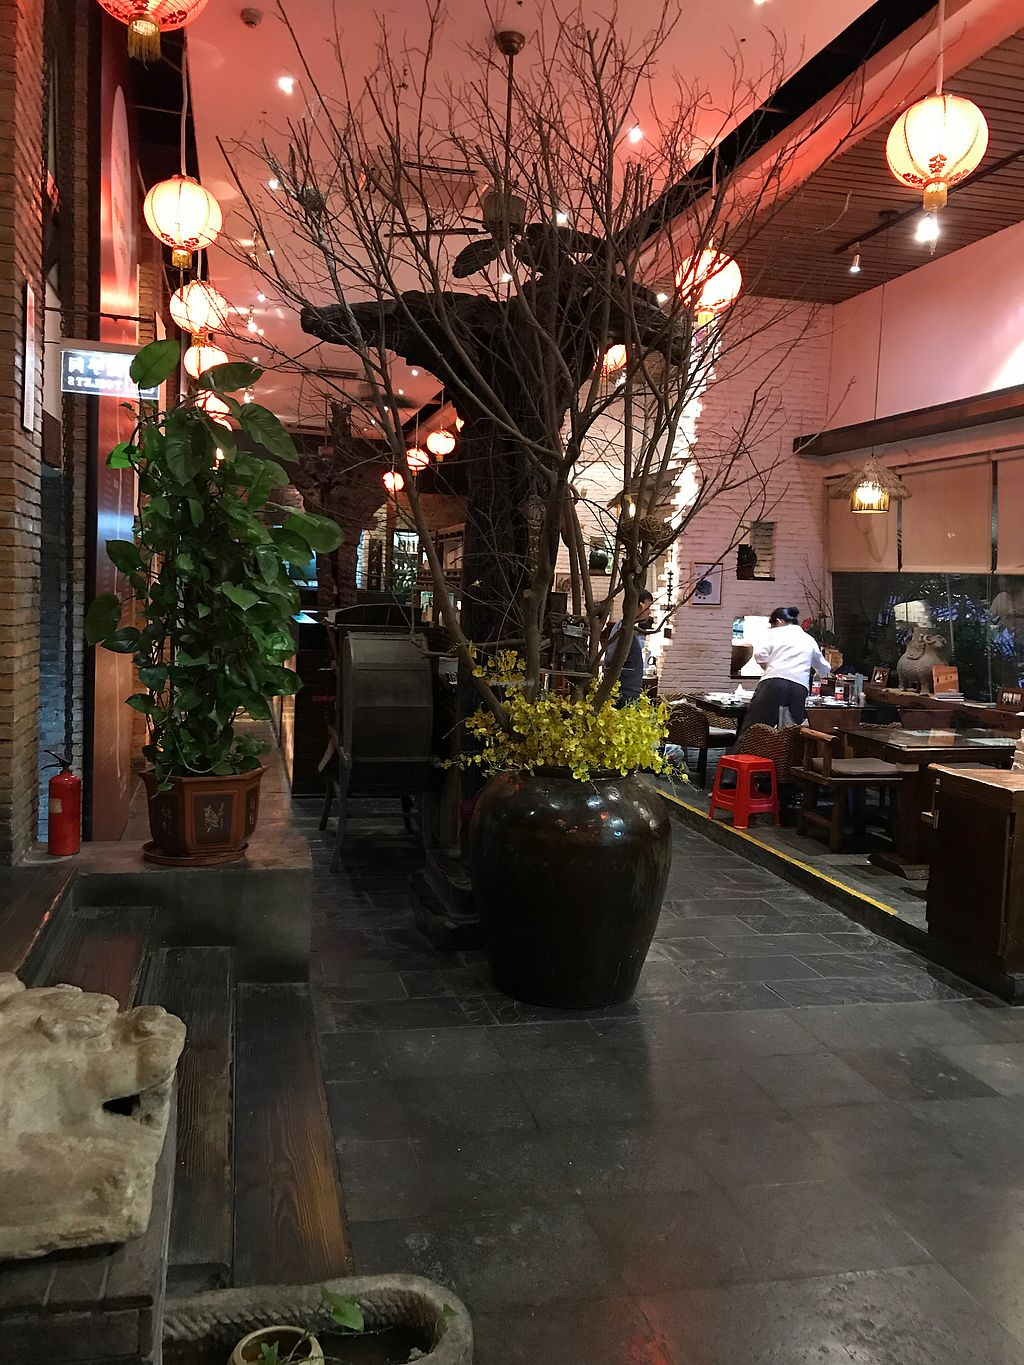 """Photo of Shan Ding Dong Ren - Caveman Vegetarian Teahouse  by <a href=""""/members/profile/VeganRambo"""">VeganRambo</a> <br/>Inside of the restaurant <br/> July 19, 2017  - <a href='/contact/abuse/image/18363/281994'>Report</a>"""